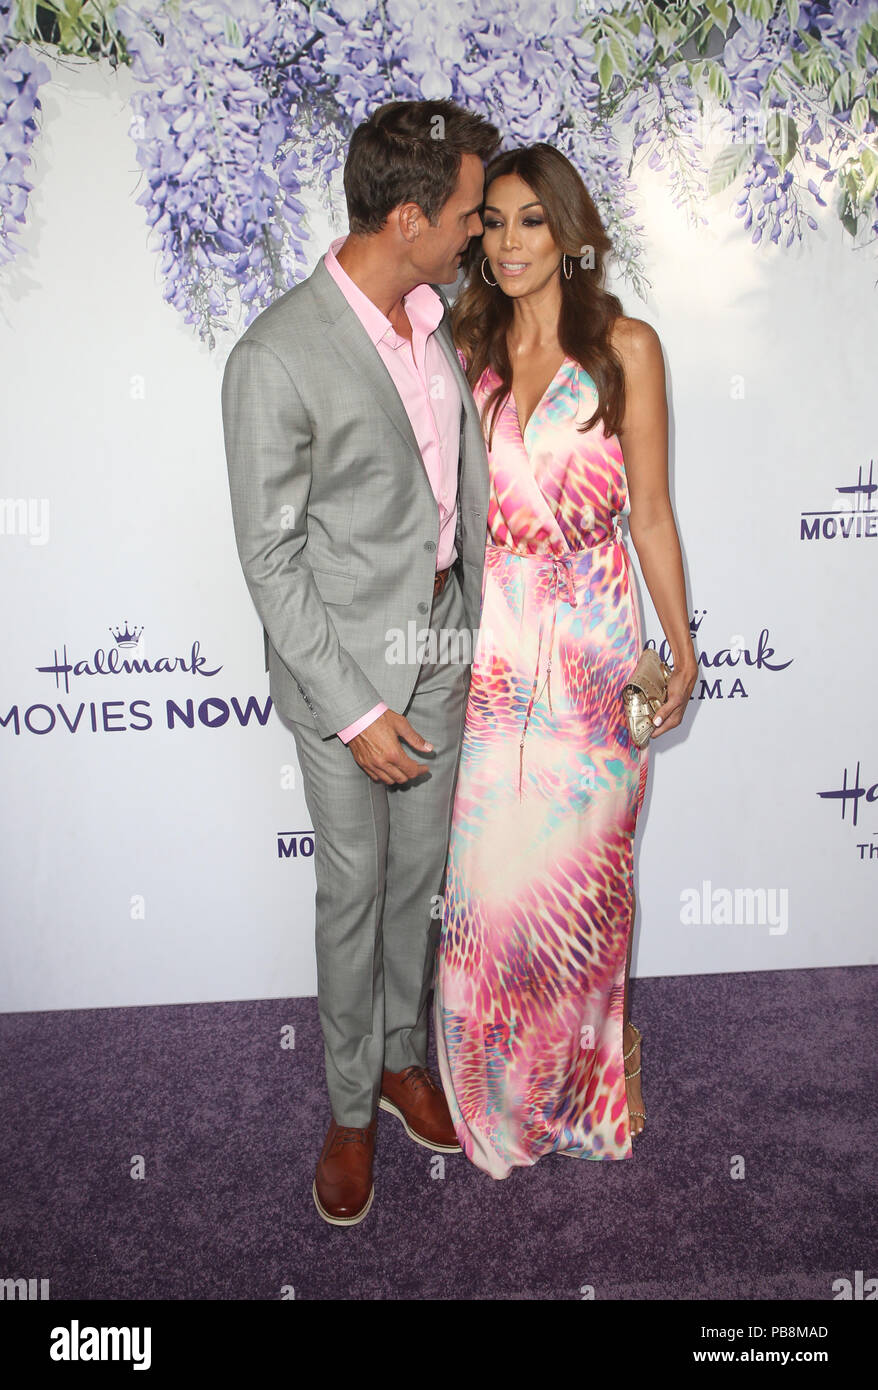 Beverly Hills Ca 26th July 2018 Cameron Mathison Vanessa Arevalo At The Hallmark Channel Summer 2018 Tca Press Tour Event In Beverly Hills California On July 26 2018 Credit Faye Sadou Mediapunch Credit No biography is available for vanessa arevalo. https www alamy com beverly hills ca 26th july 2018 cameron mathison vanessa arevalo at the hallmark channel summer 2018 tca press tour event in beverly hills california on july 26 2018 credit faye sadoumediapunch credit mediapunch incalamy live news image213477221 html